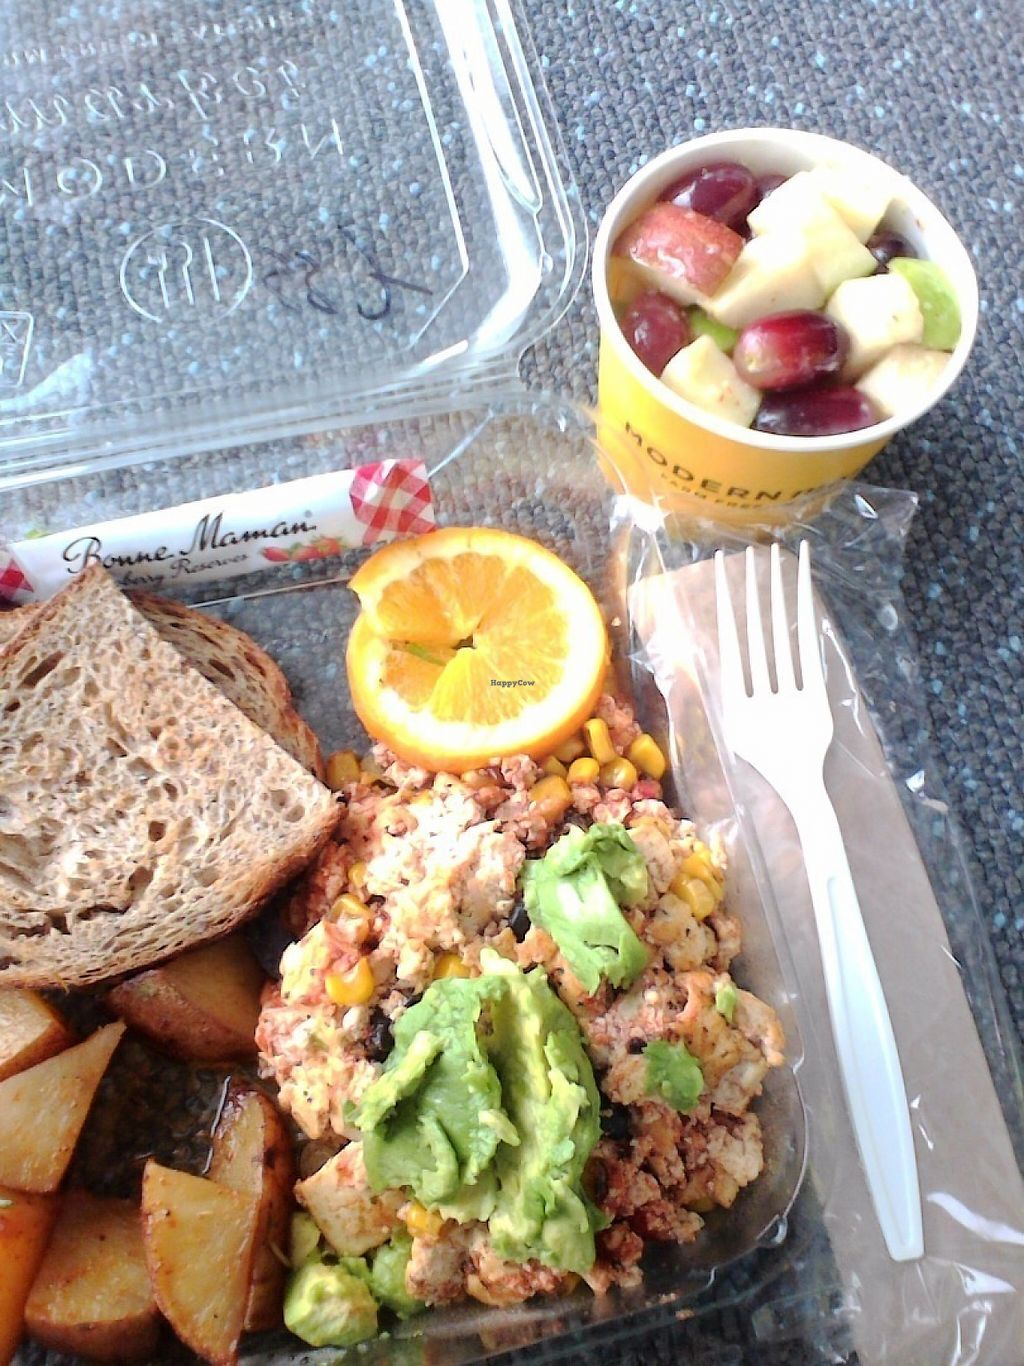 """Photo of Modern Market - Airport TB  by <a href=""""/members/profile/HiKatieB"""">HiKatieB</a> <br/>Southwest tofu scramble with no cheese and a fruit cup <br/> May 7, 2017  - <a href='/contact/abuse/image/83746/256759'>Report</a>"""